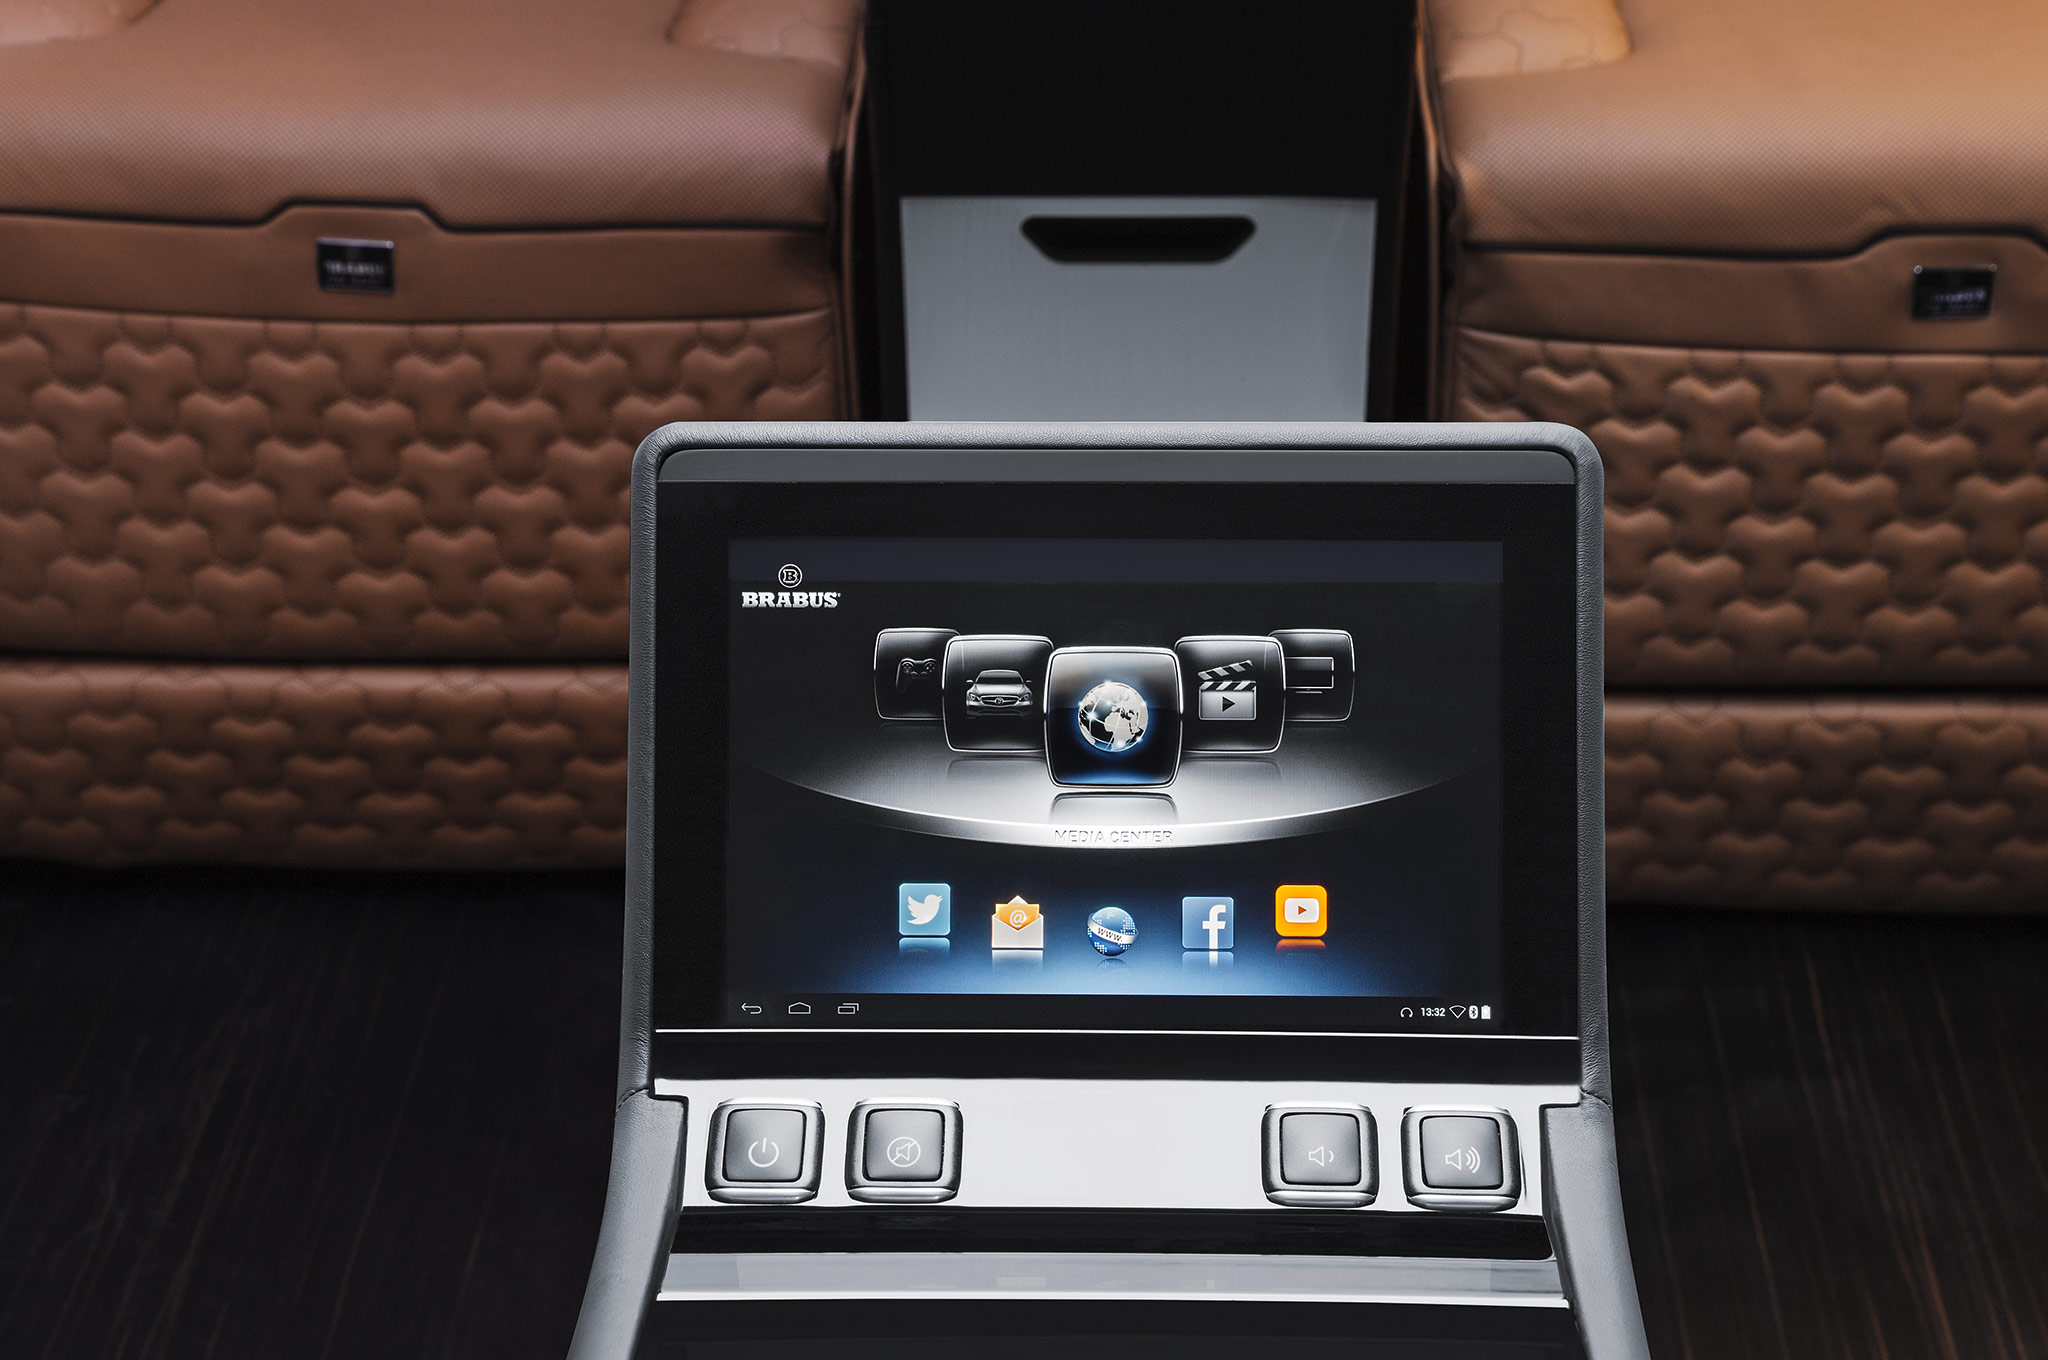 ' ' from the web at 'http://st.automobilemag.com/uploads/sites/11/2014/08/Brabus-Mercedes-Benz-Sprinter-Business-Lounge-touchscreen-controller.jpg'